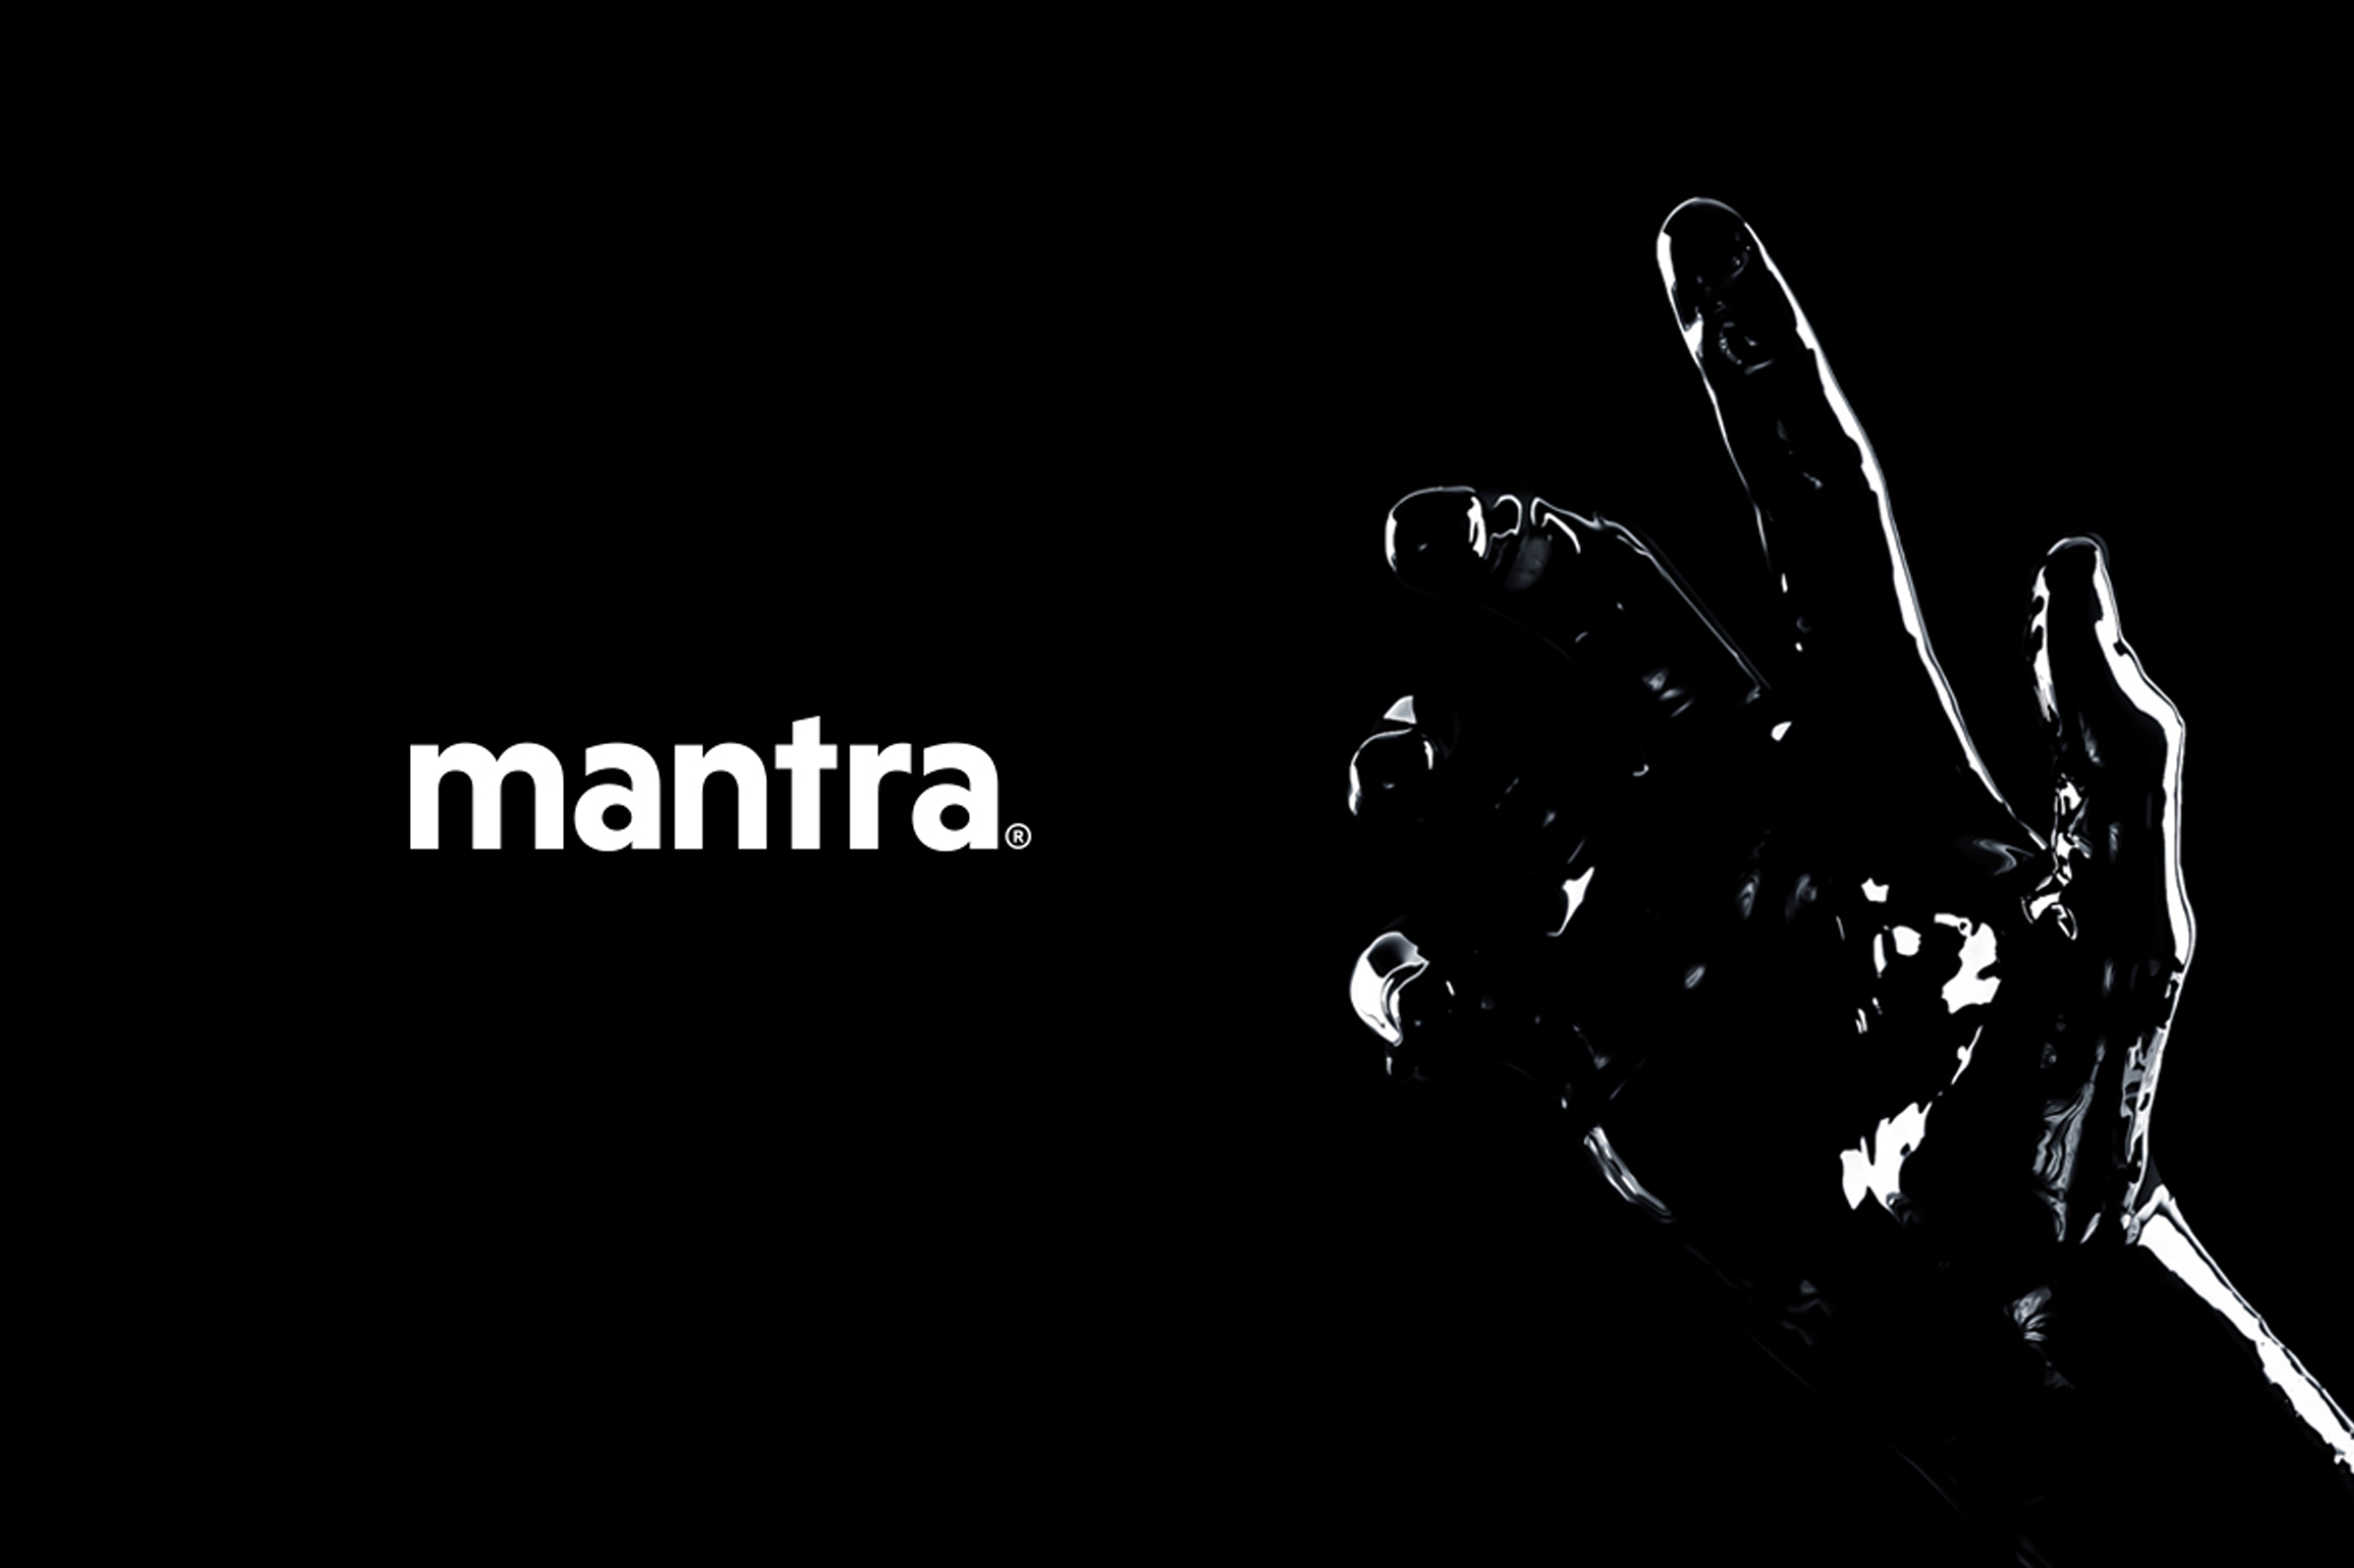 If You Are Waiting for Design, This is It. Mantra | Rebranding